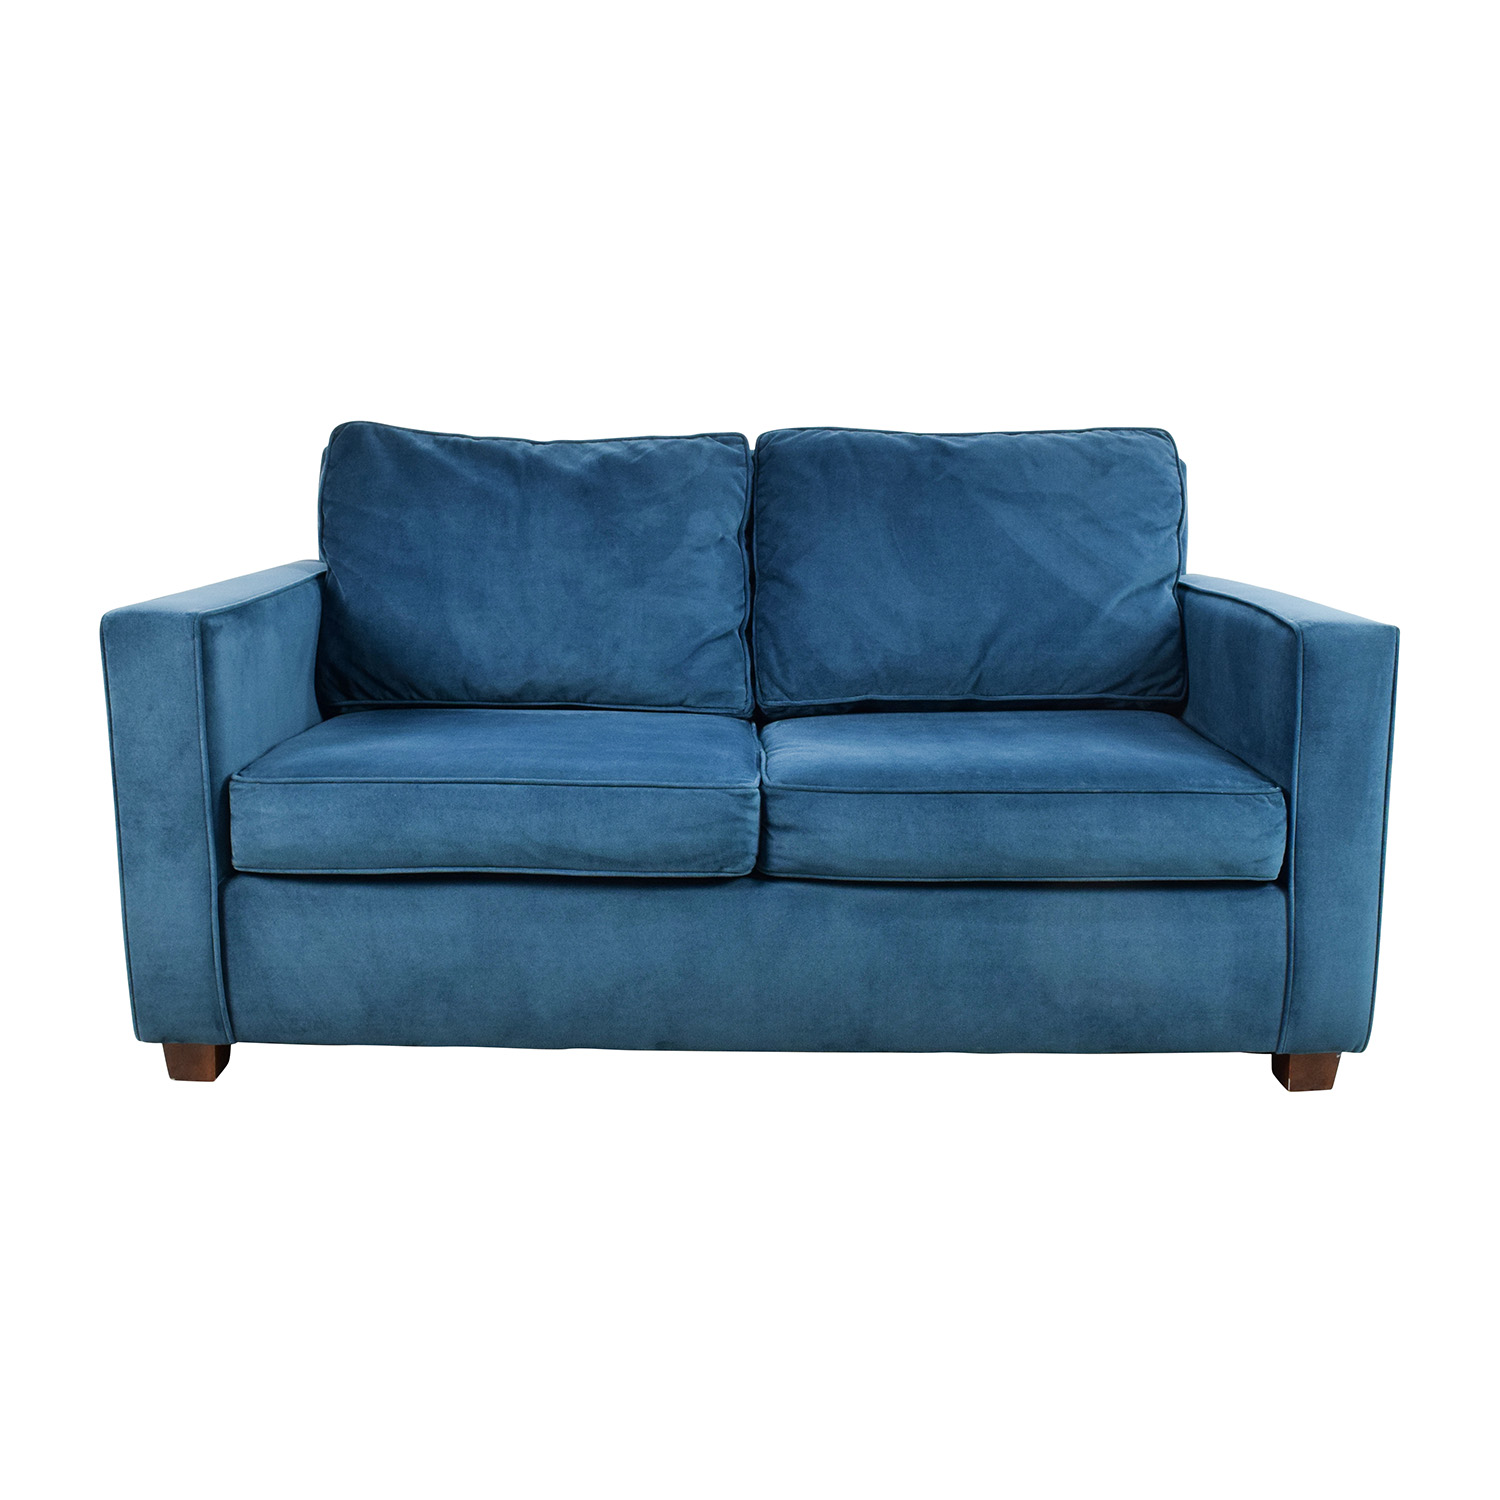 39% OFF West Elm West Elm Celestial Blue Henry Loveseat Sofas